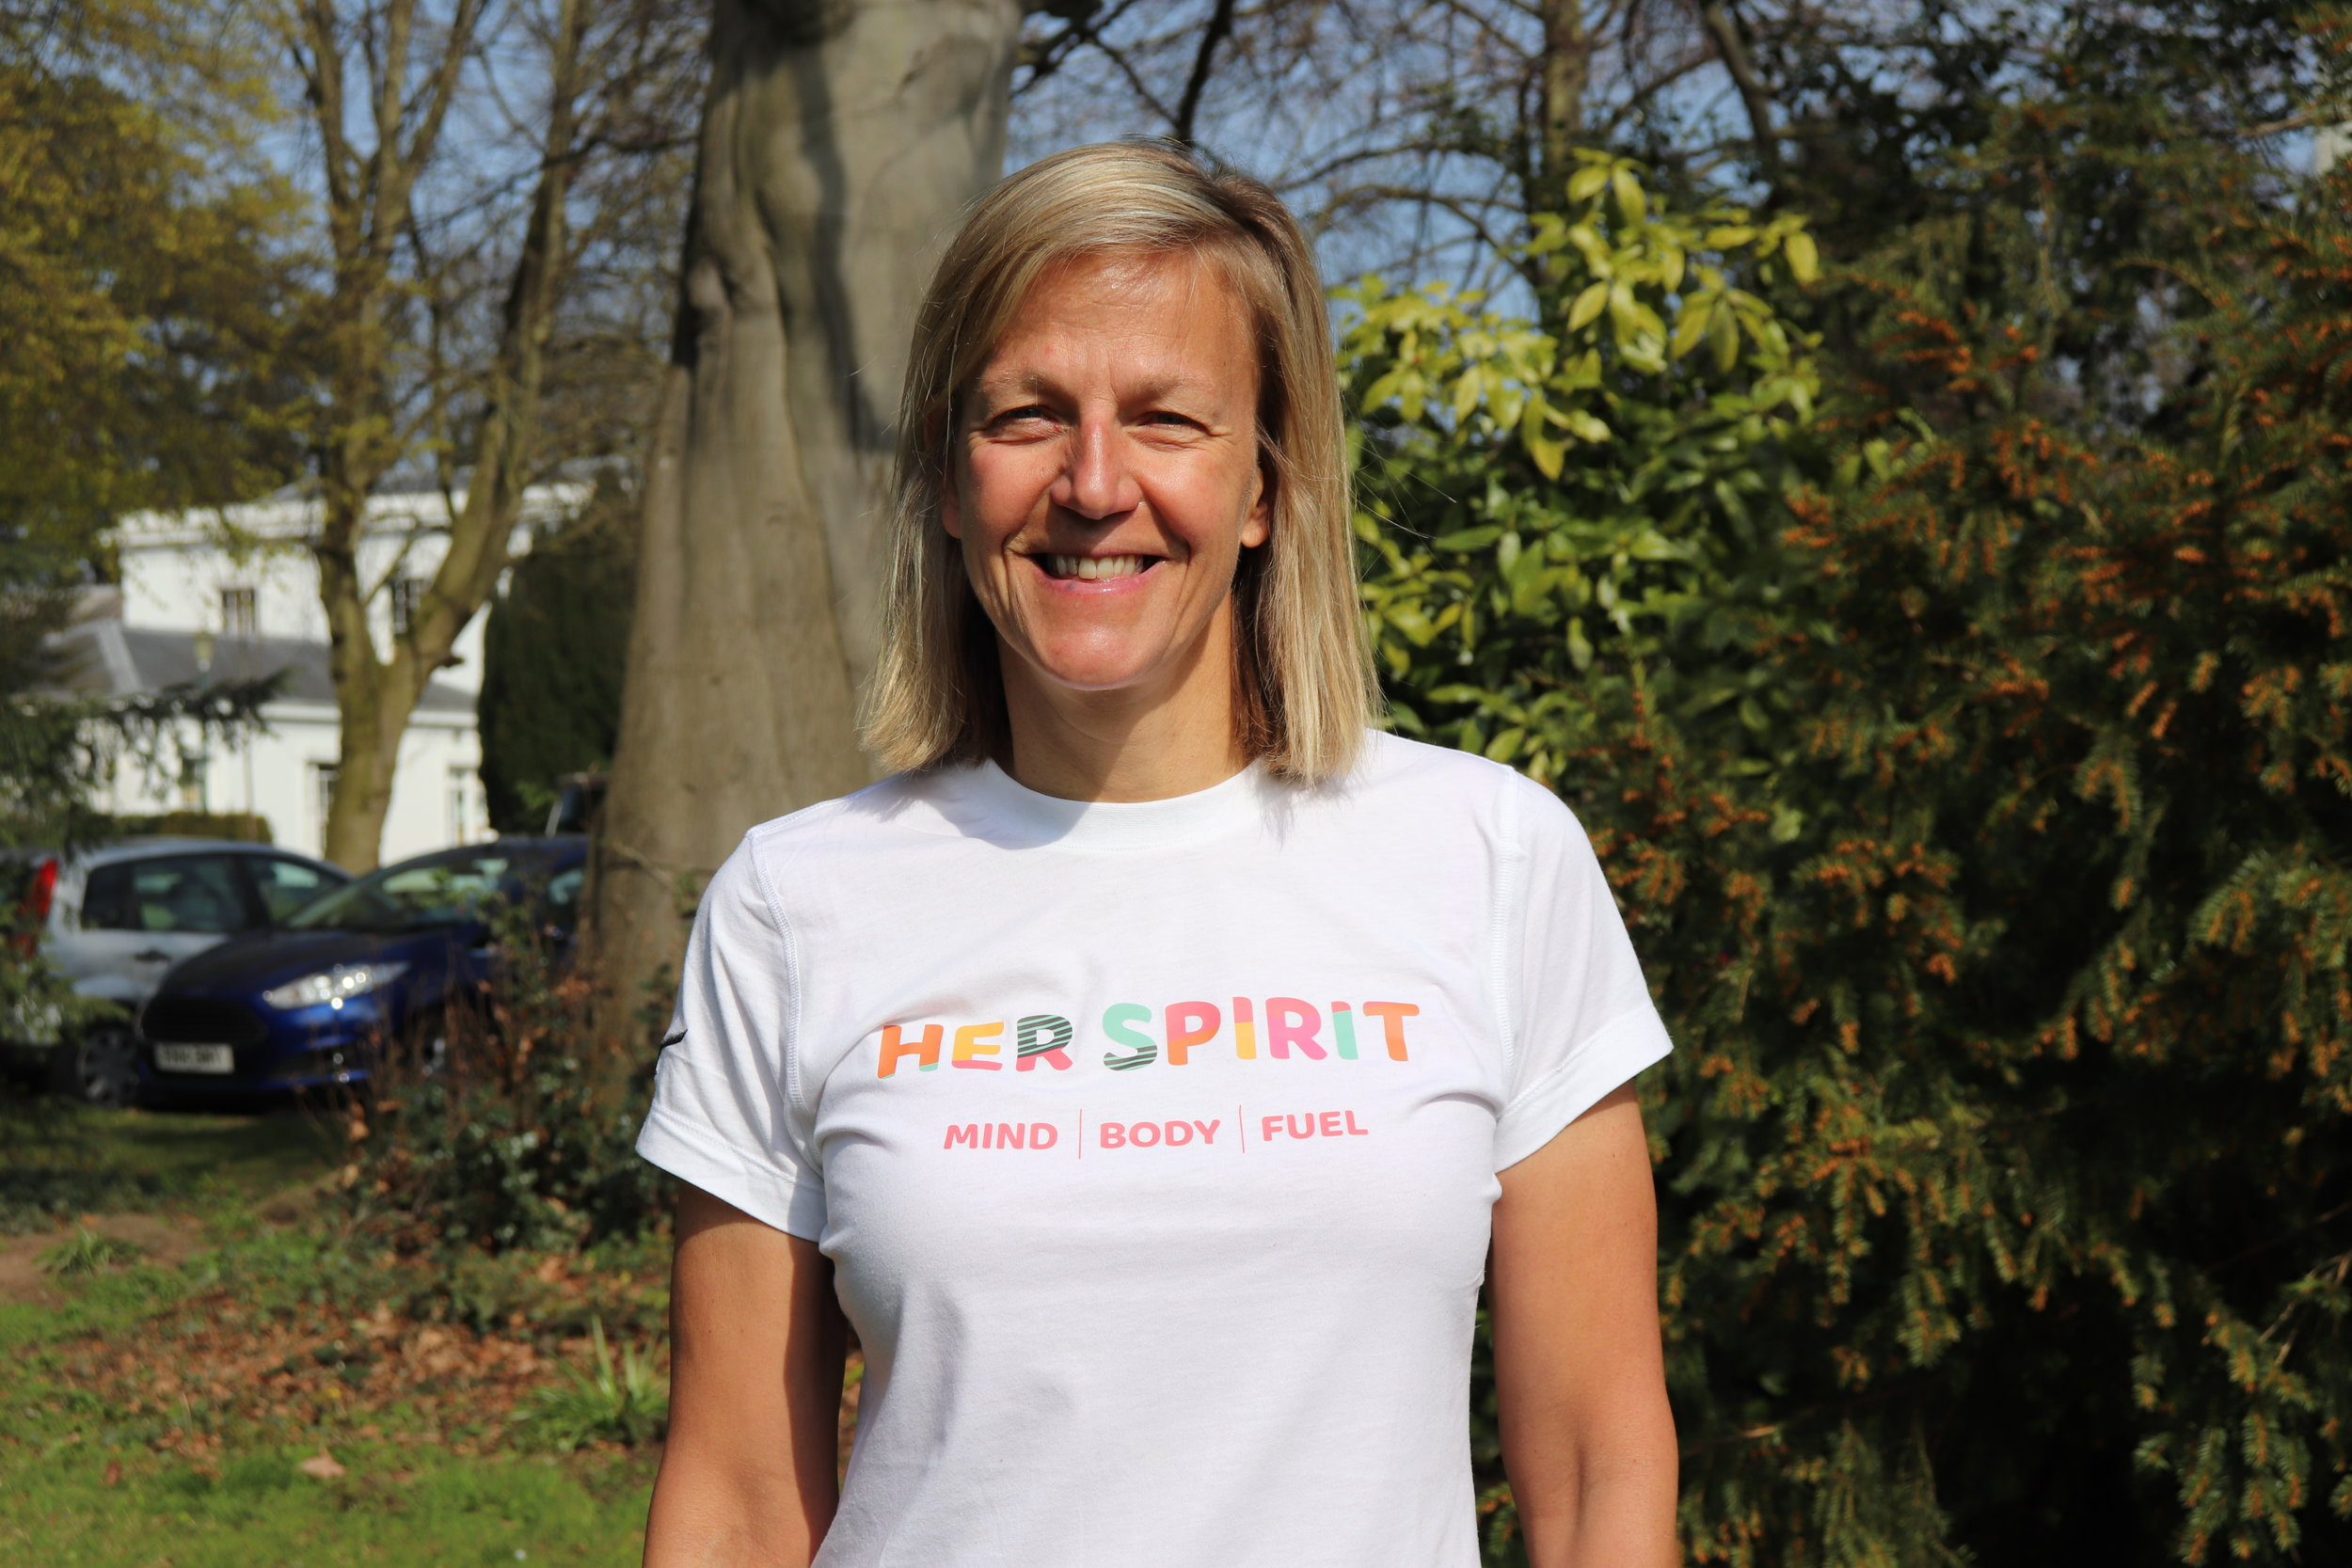 Introducing Mel Berry - A British Triathlon coach and marketeer who has supported many senior leaders in sport to take on physical challenges, lead more active and positive lives and recently founded the new movement for getting 1 million women active; Her Spirit.